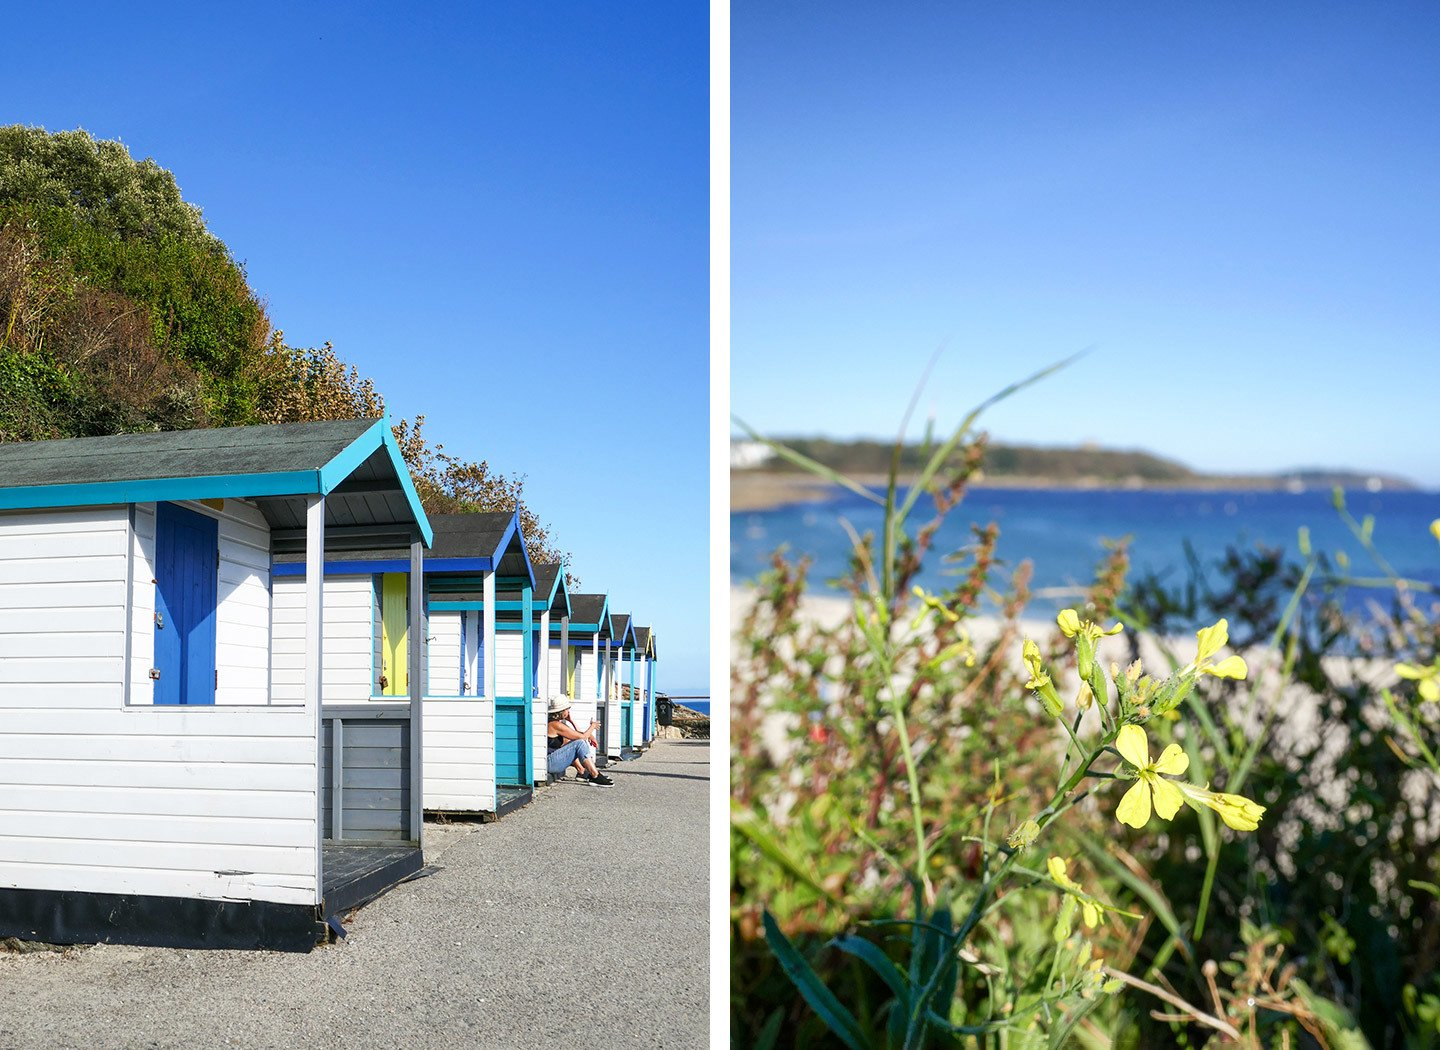 Swanpool Beach huts and coast path in Falmouth, Cornwall